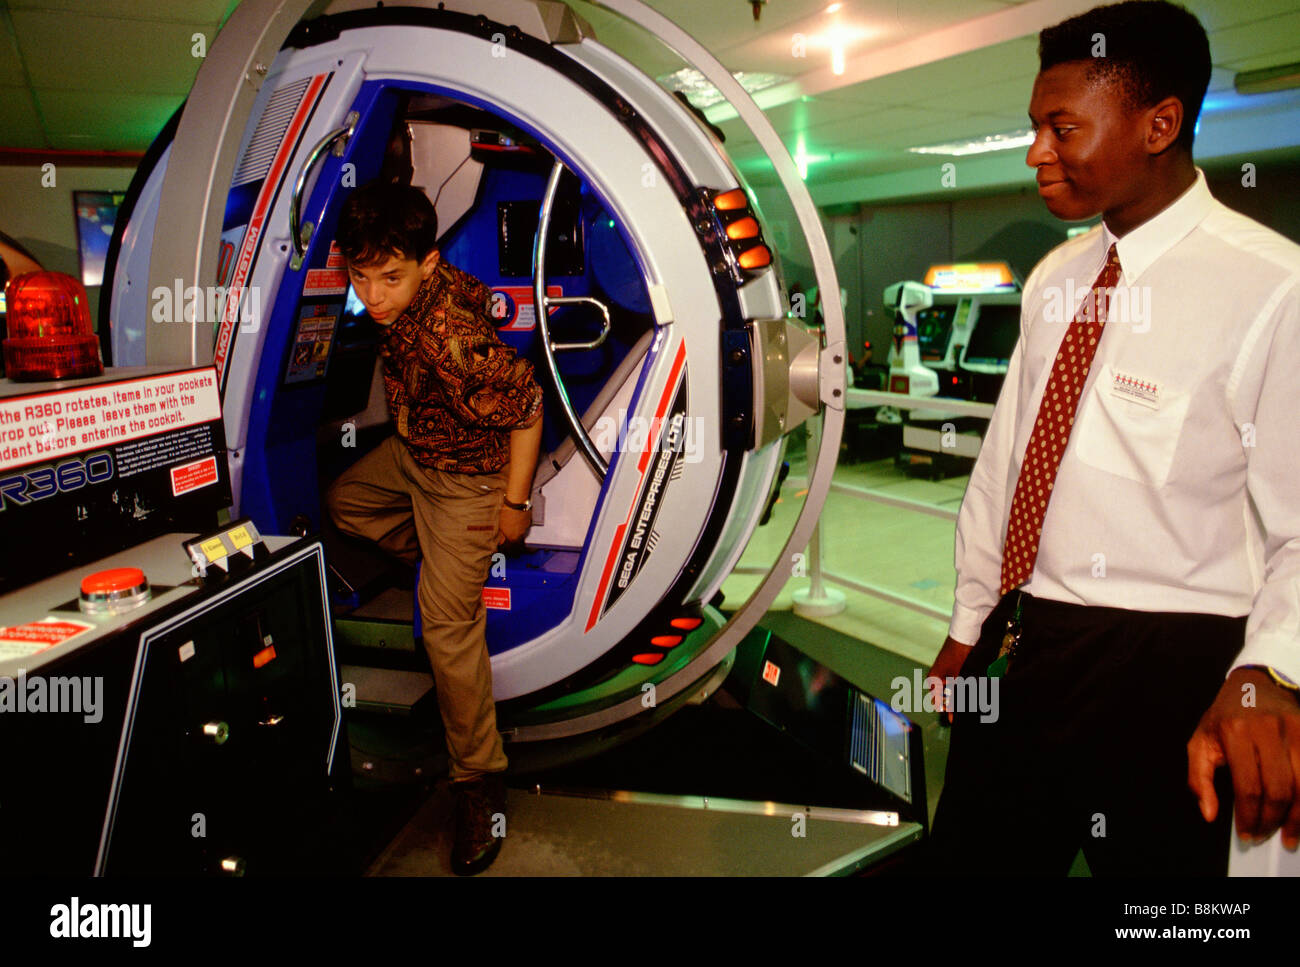 Hamley's Toy Shop London UK A young boy get out of the R360 servo based game on Sega games floor. - Stock Image